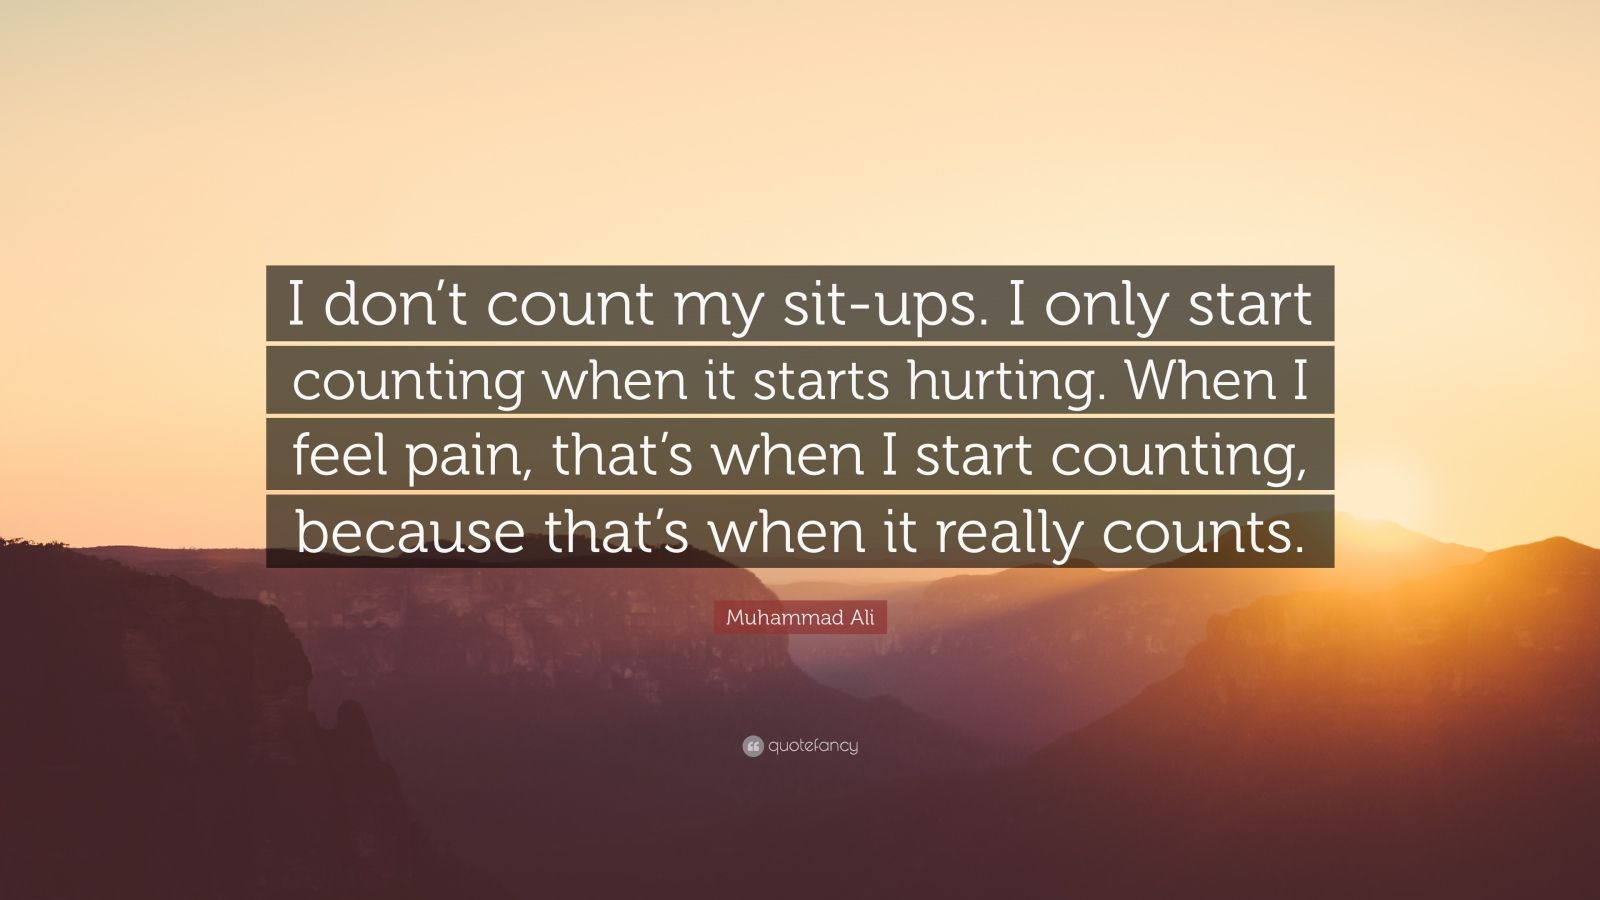 Motivational Quotes: U201cI Donu0027t Count My Sit Ups. I Only